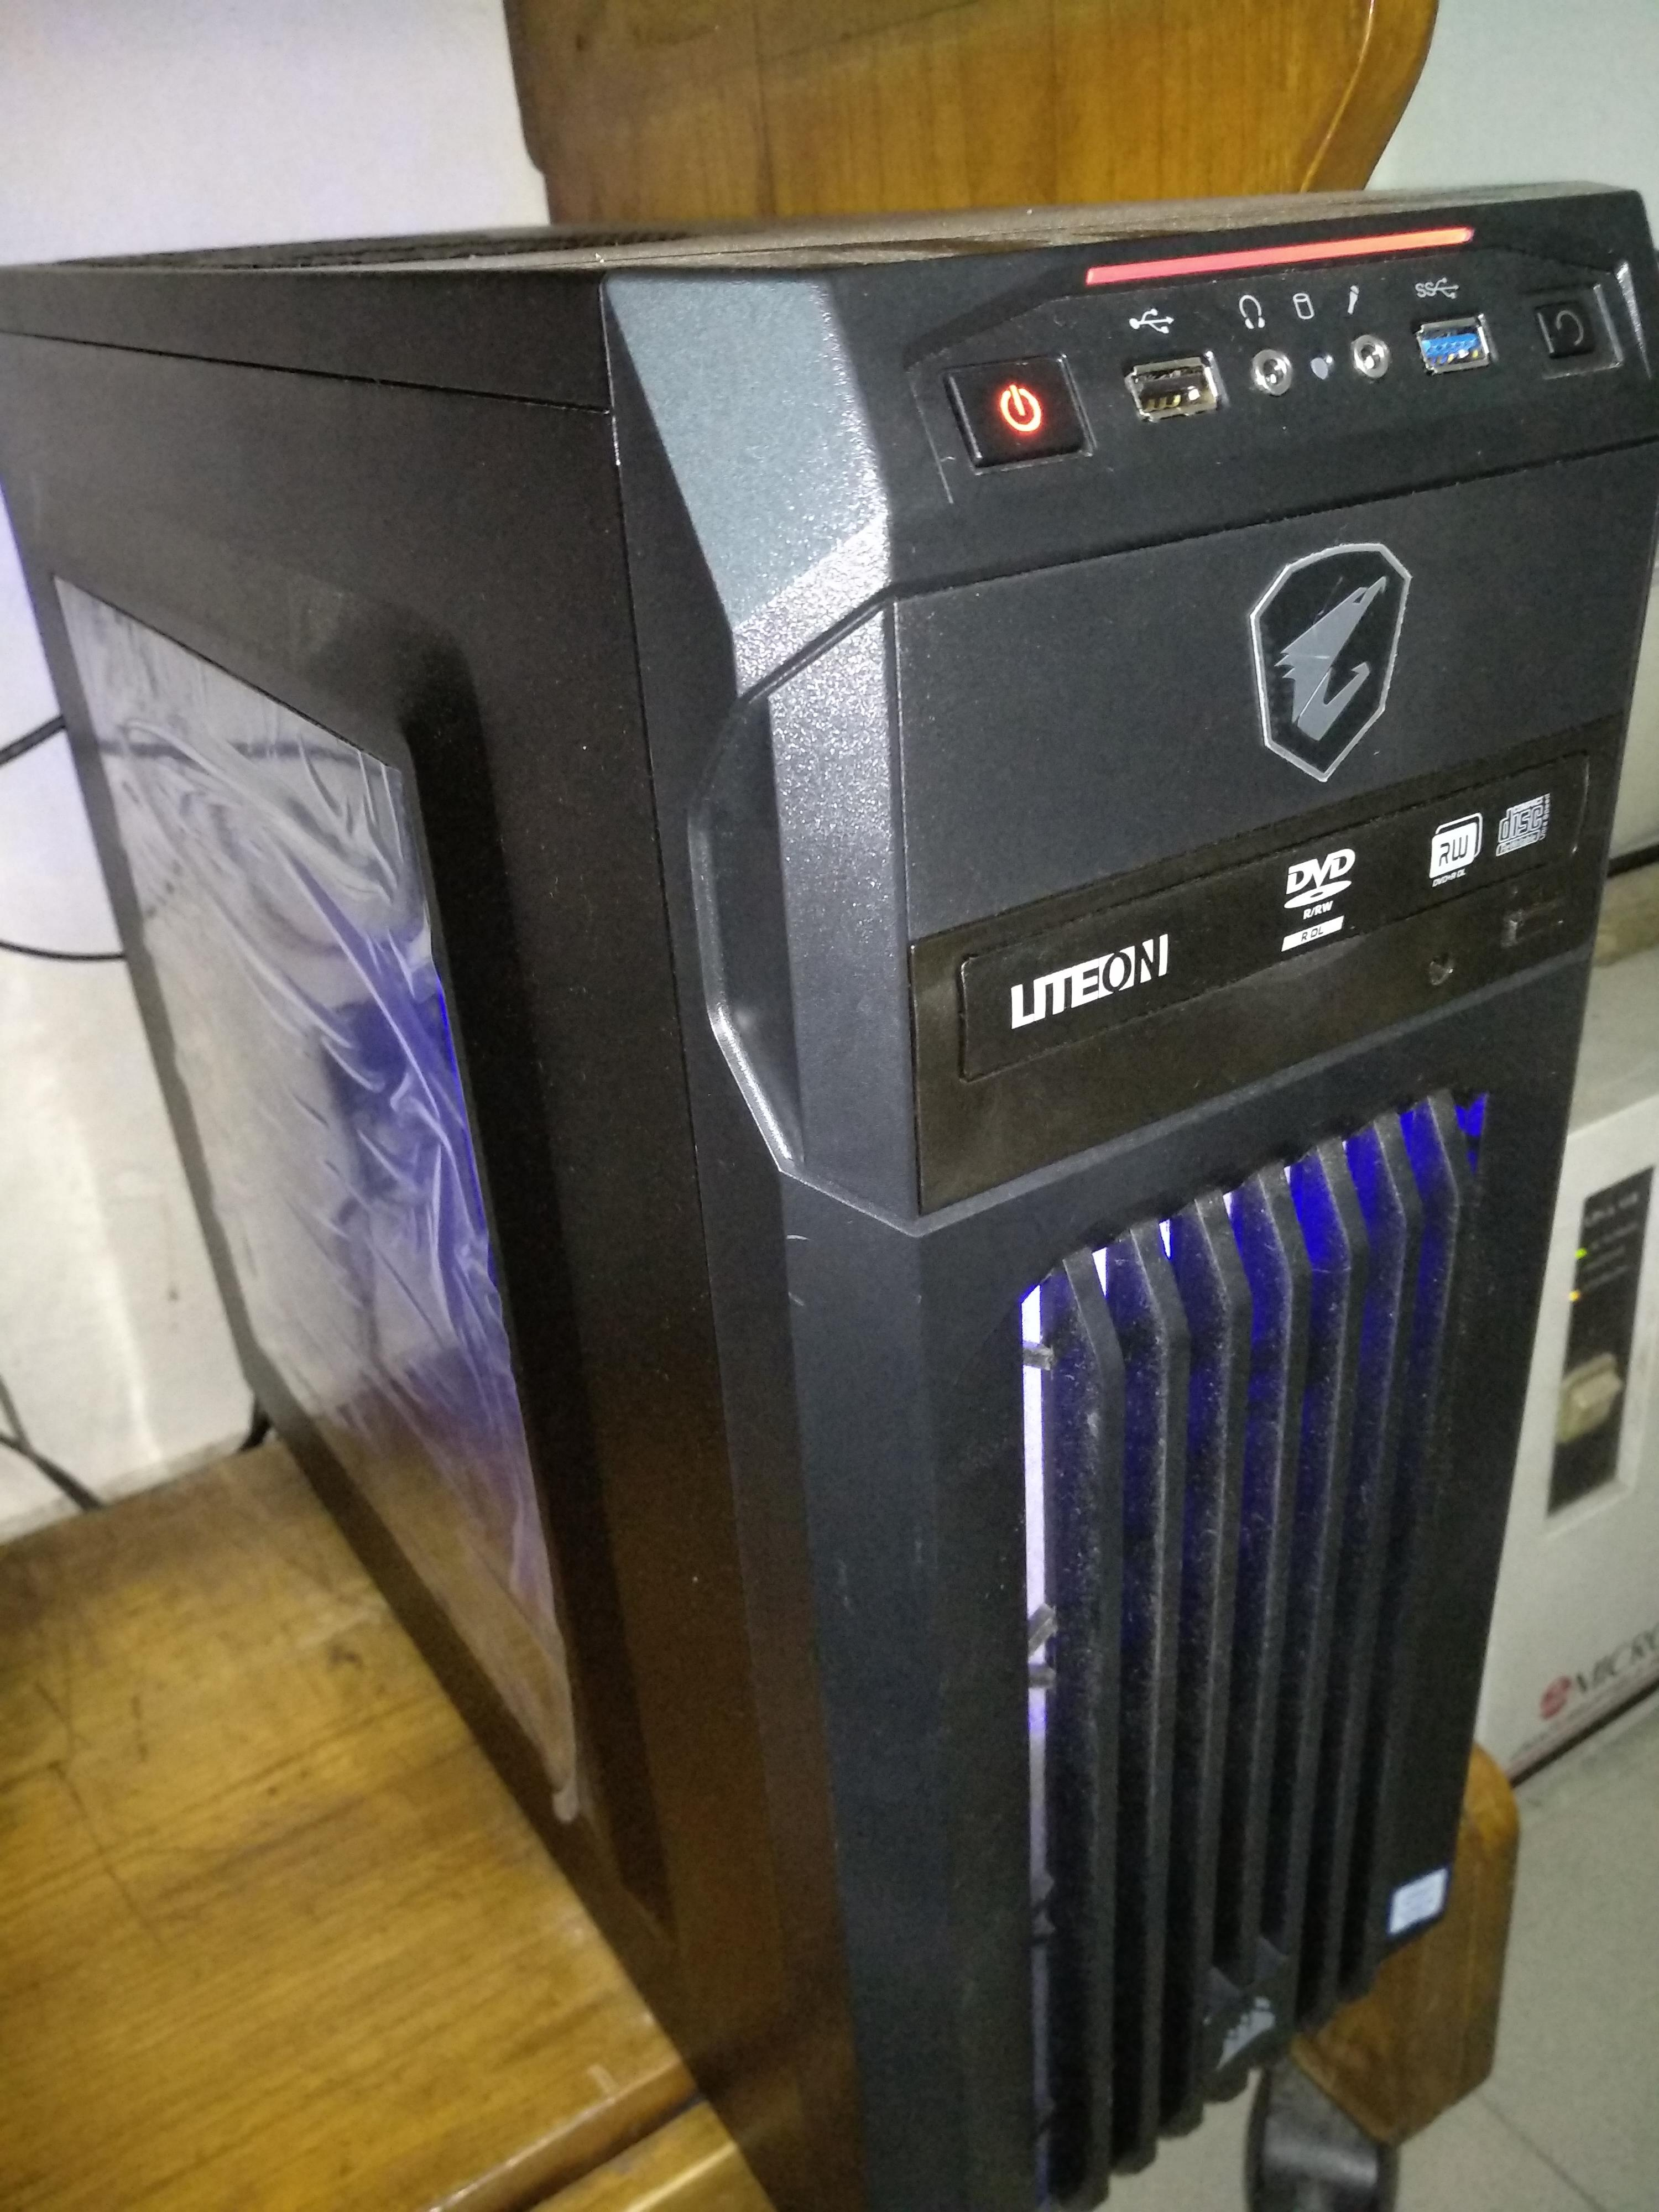 Endearing Buildi I Was A Console Peasant Until Master Race Chose Core Rx Is 16 Gigs Ram Or 32 Gaming 16 Gigs Ram Enough dpreview 16 Gigs Of Ram